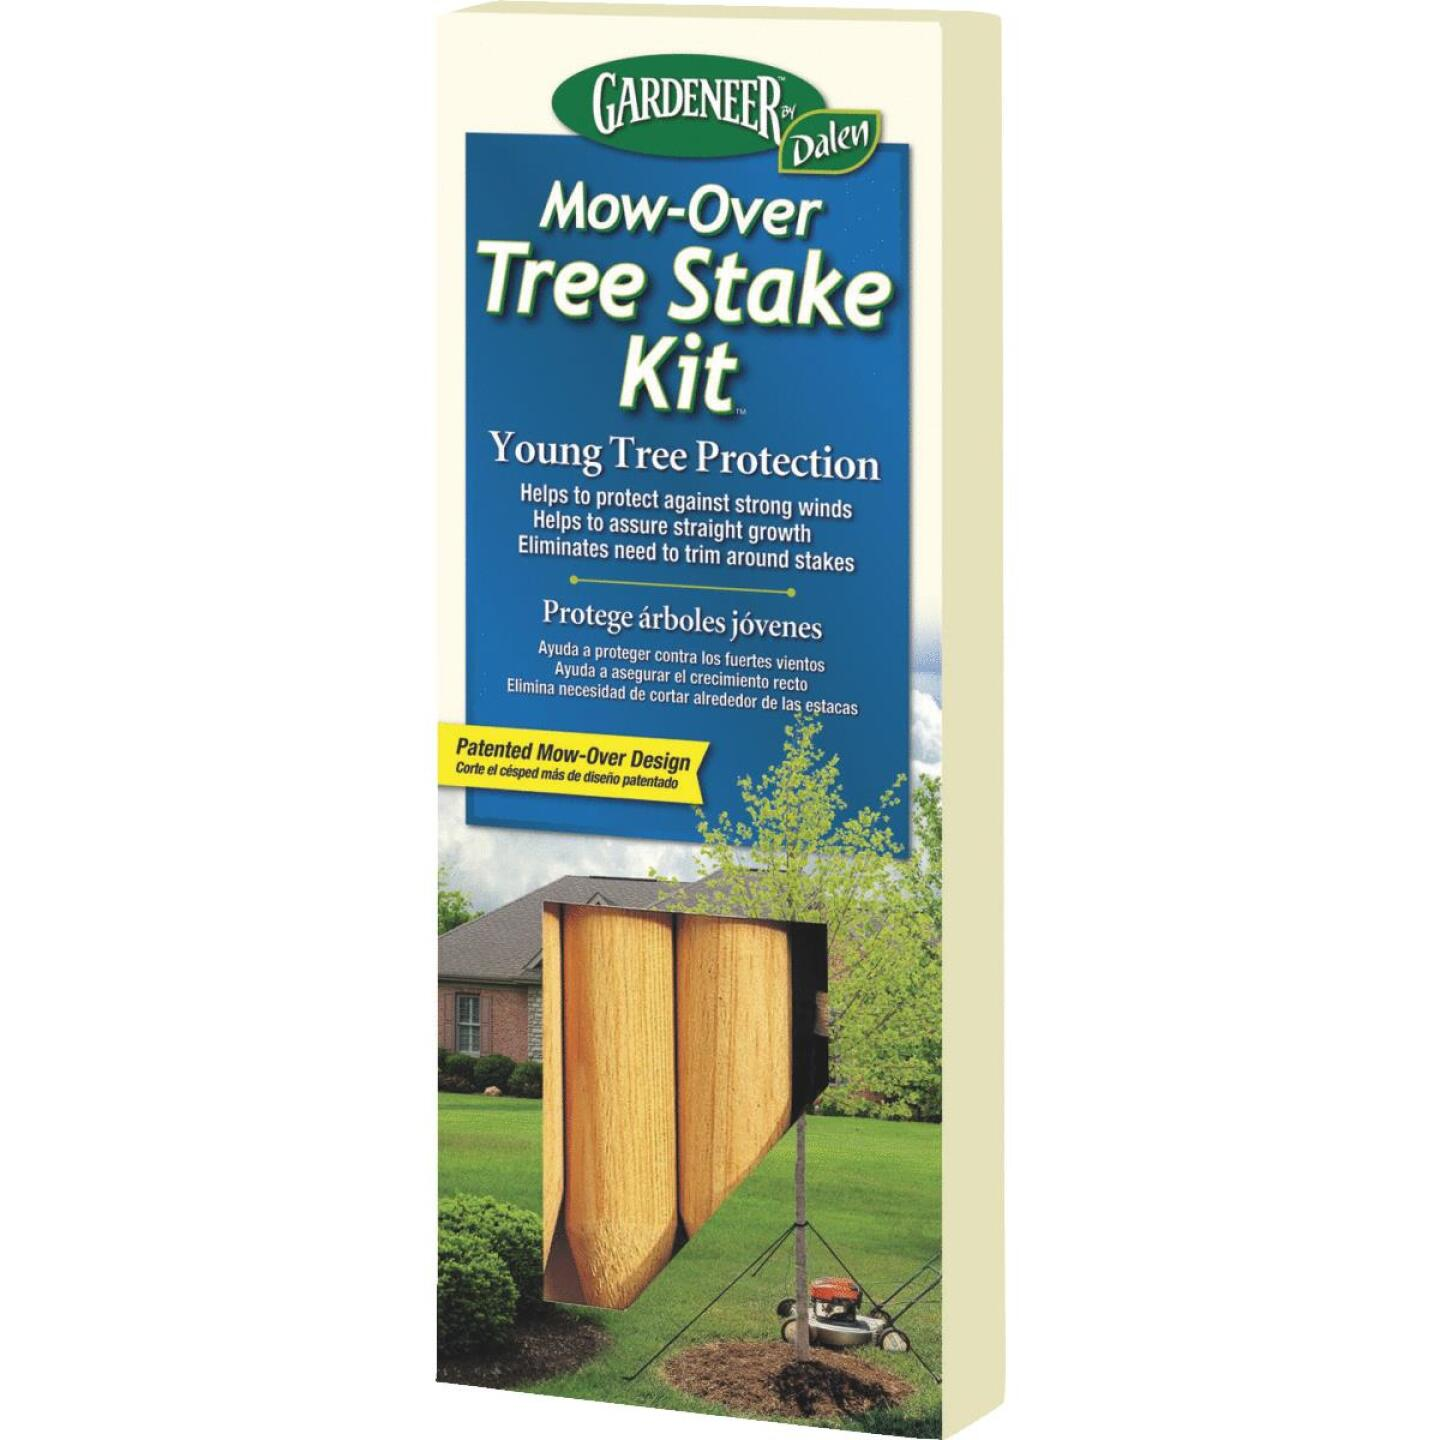 Gardener Wood Young Tree Tree Stake Kit Image 1